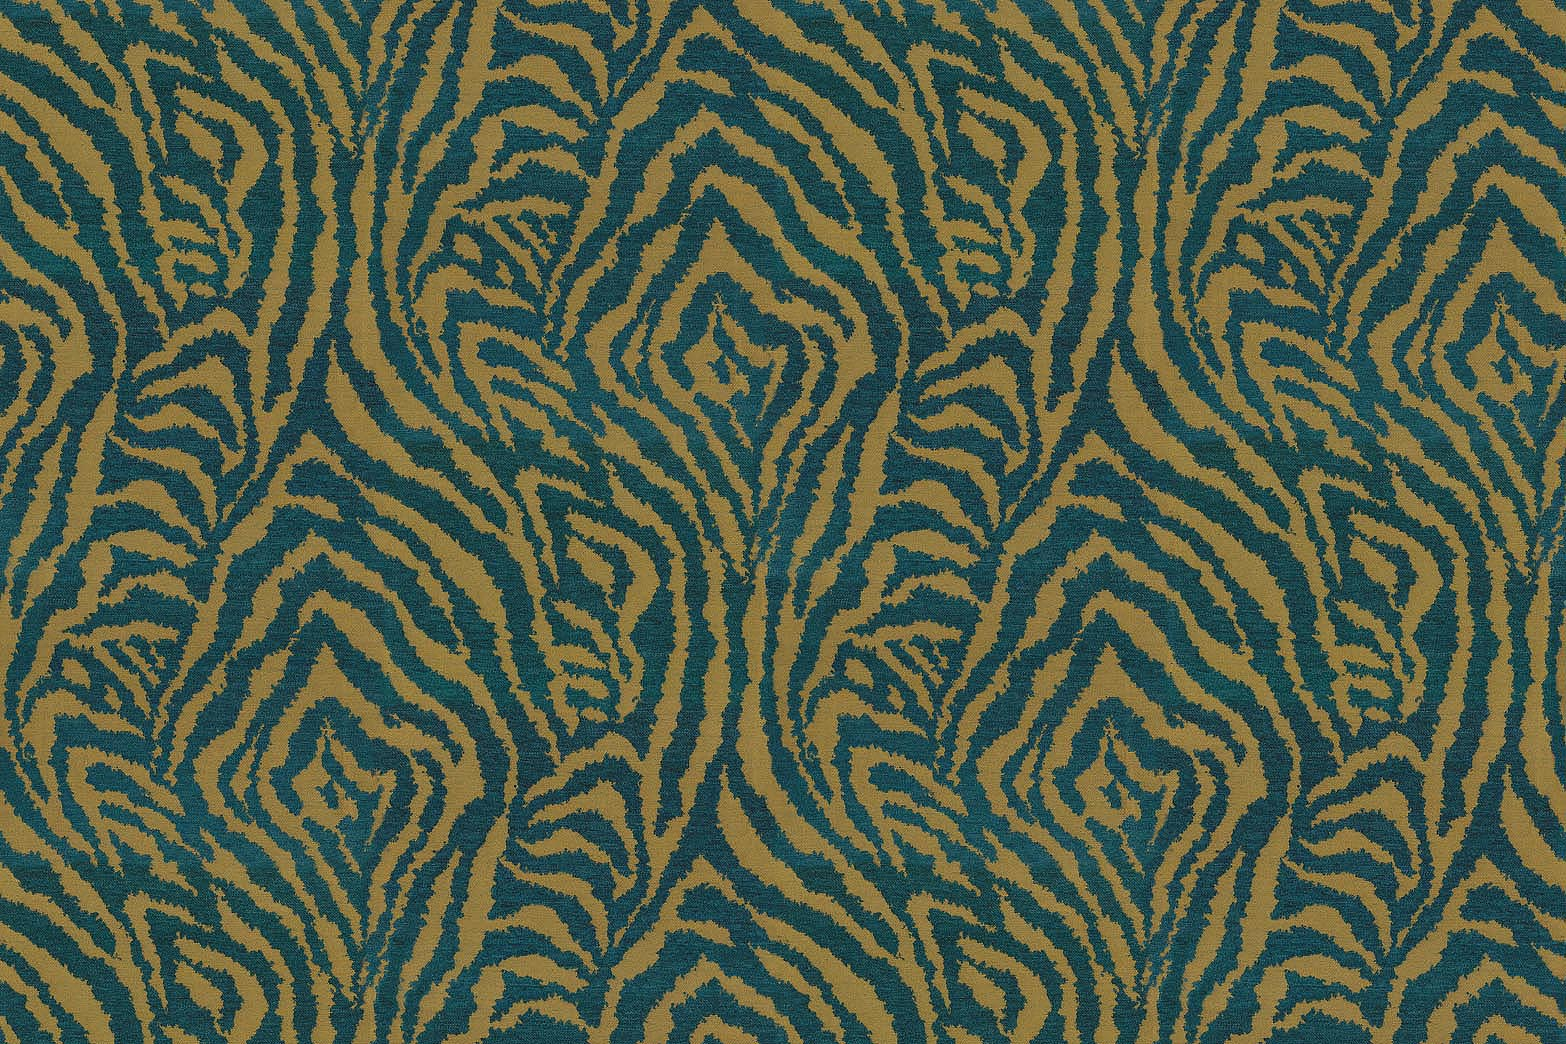 Home Decor 8\u0022x8\u0022 Fabric Swatch-IMAN Zebra Oasis Cypress